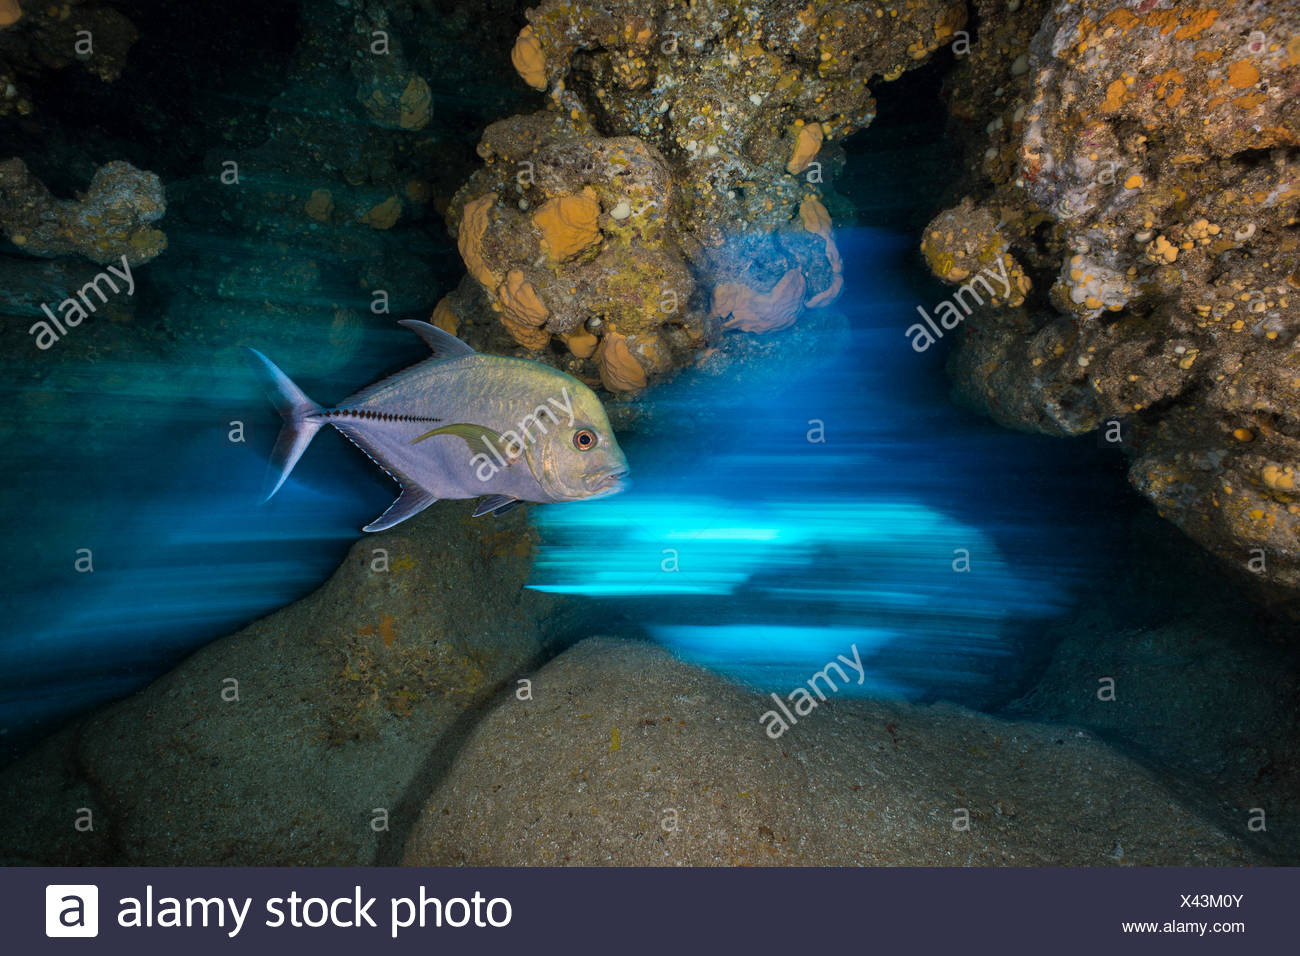 Long exposure of Black jack (Caranx lugubris) swimming through a cavern in a coral reef. East End, Grand Cayman, Cayman Islands. - Stock Image